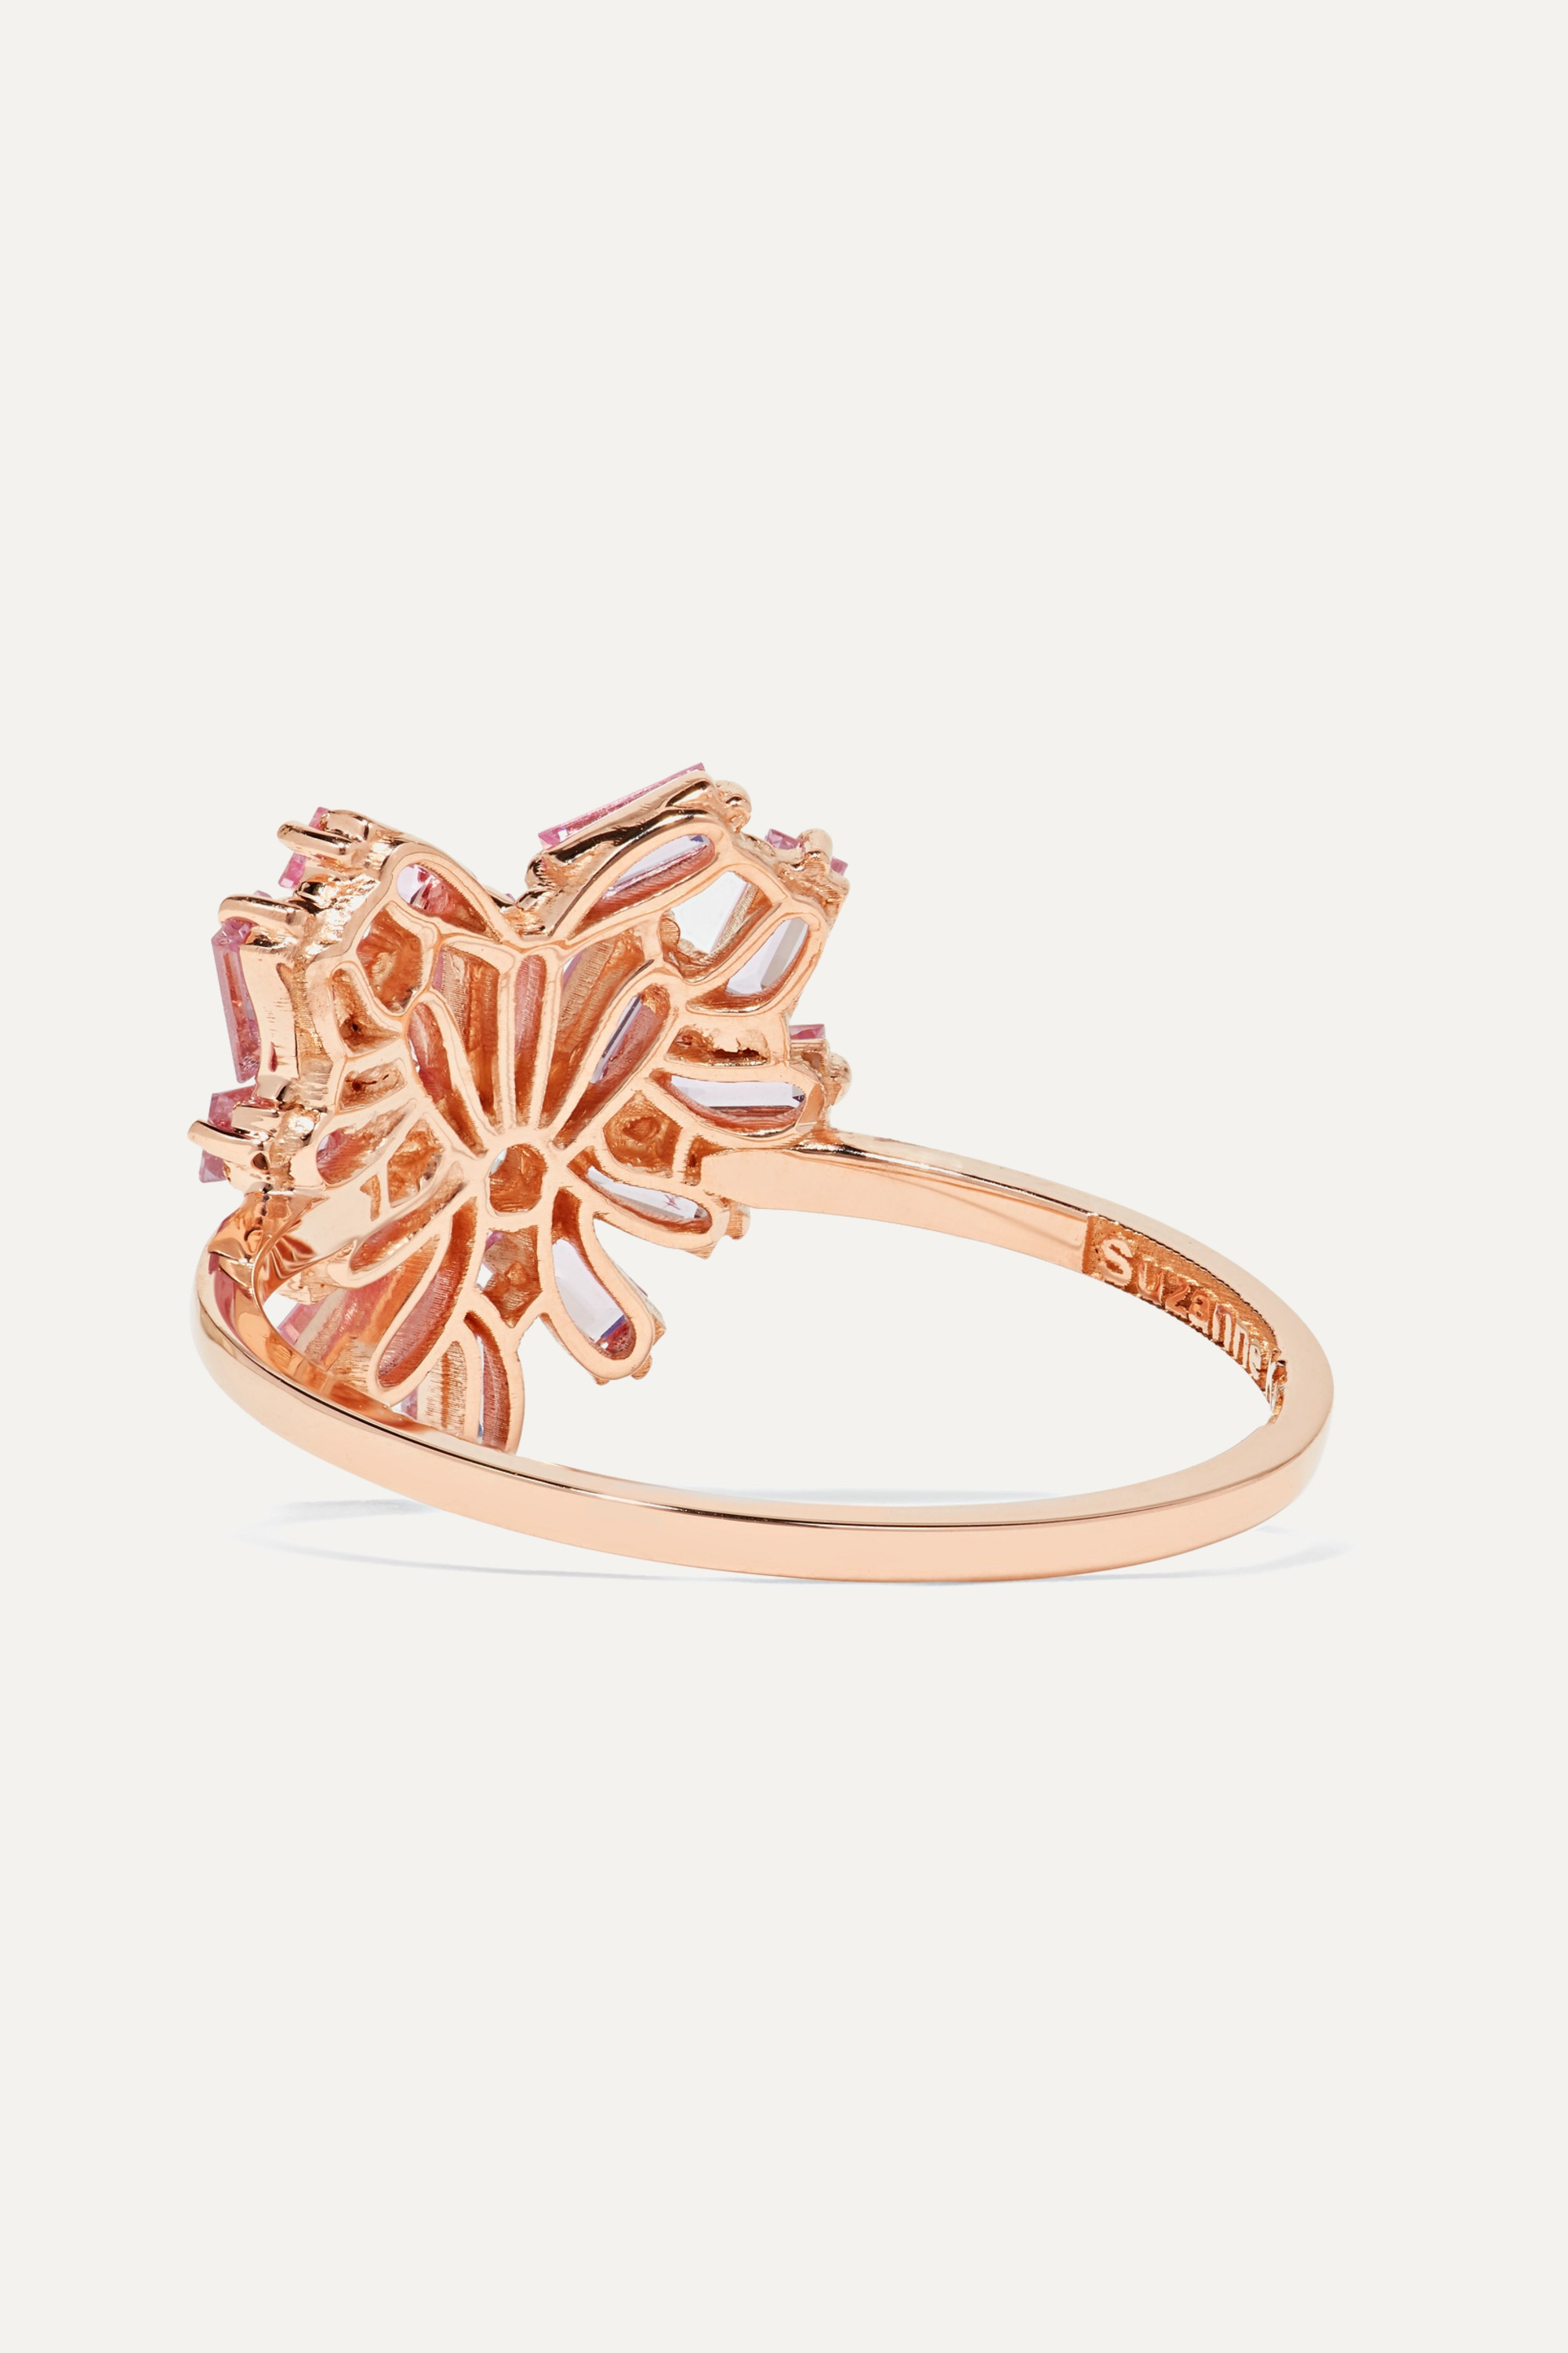 Suzanne Kalan 18-karat rose gold, sapphire and diamond ring